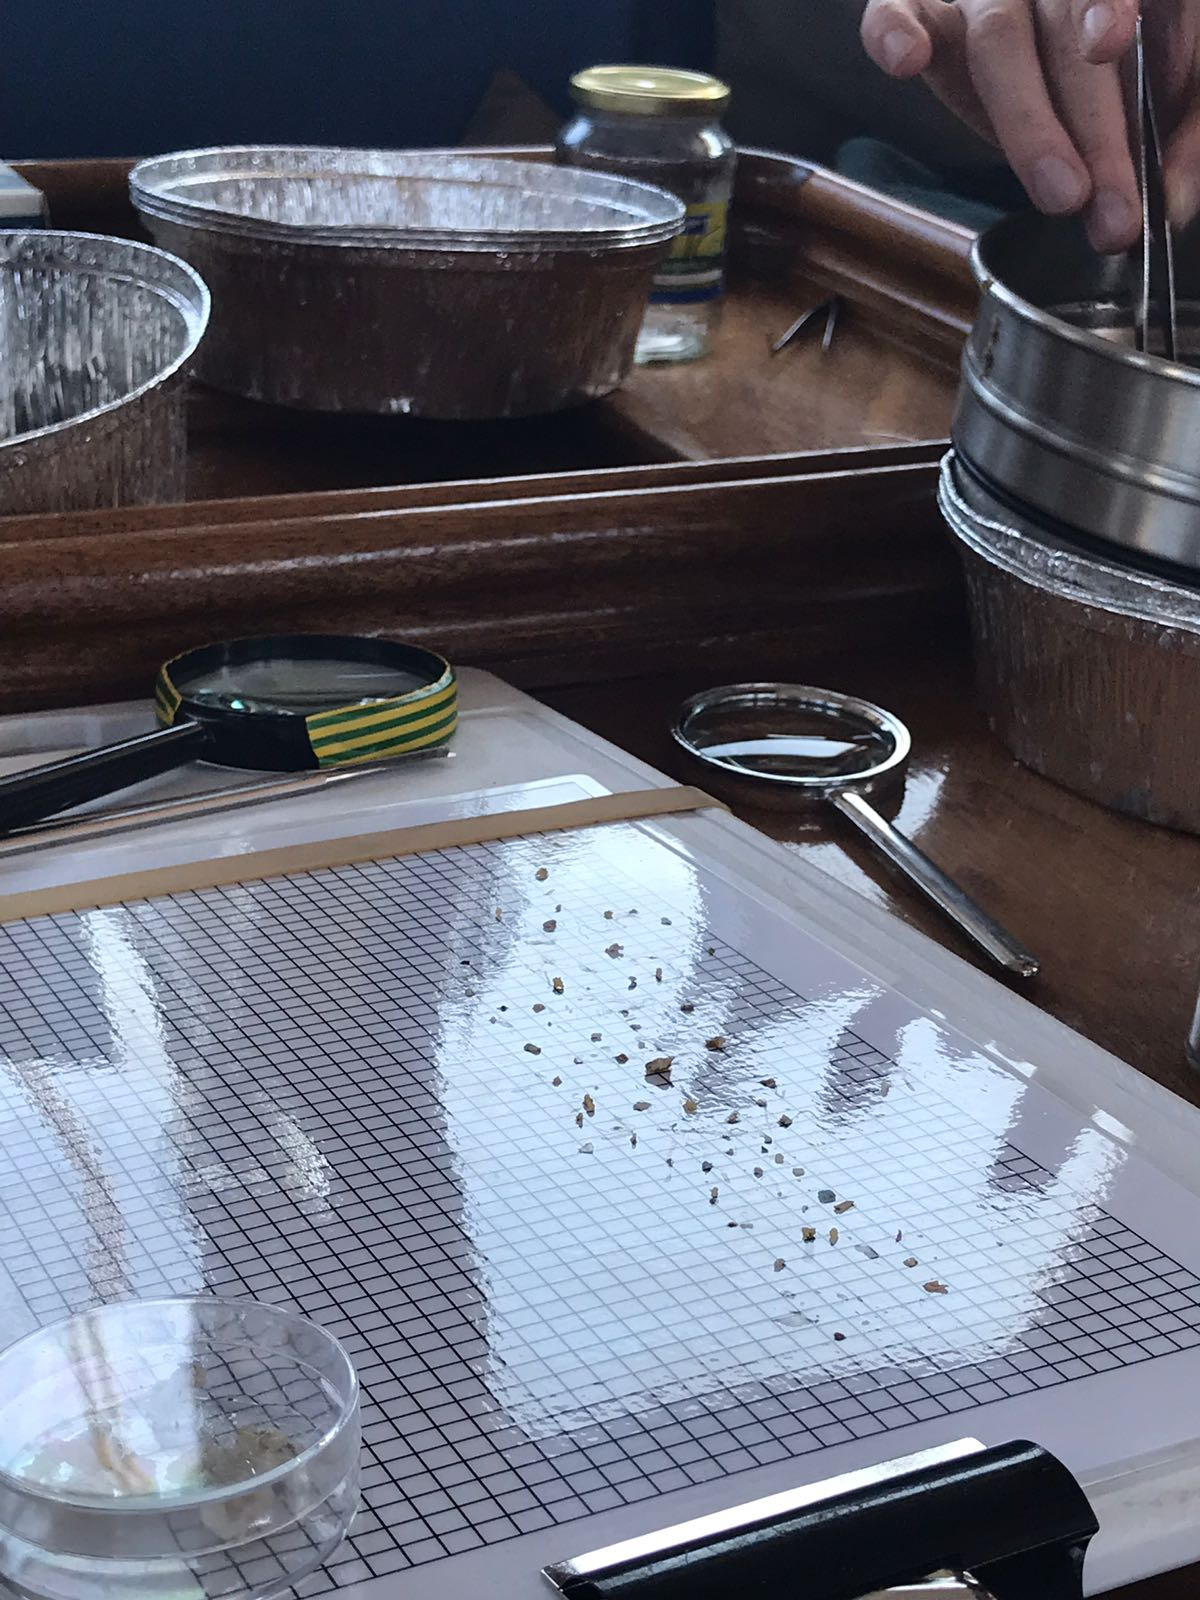 Inspecting the microplastic damage